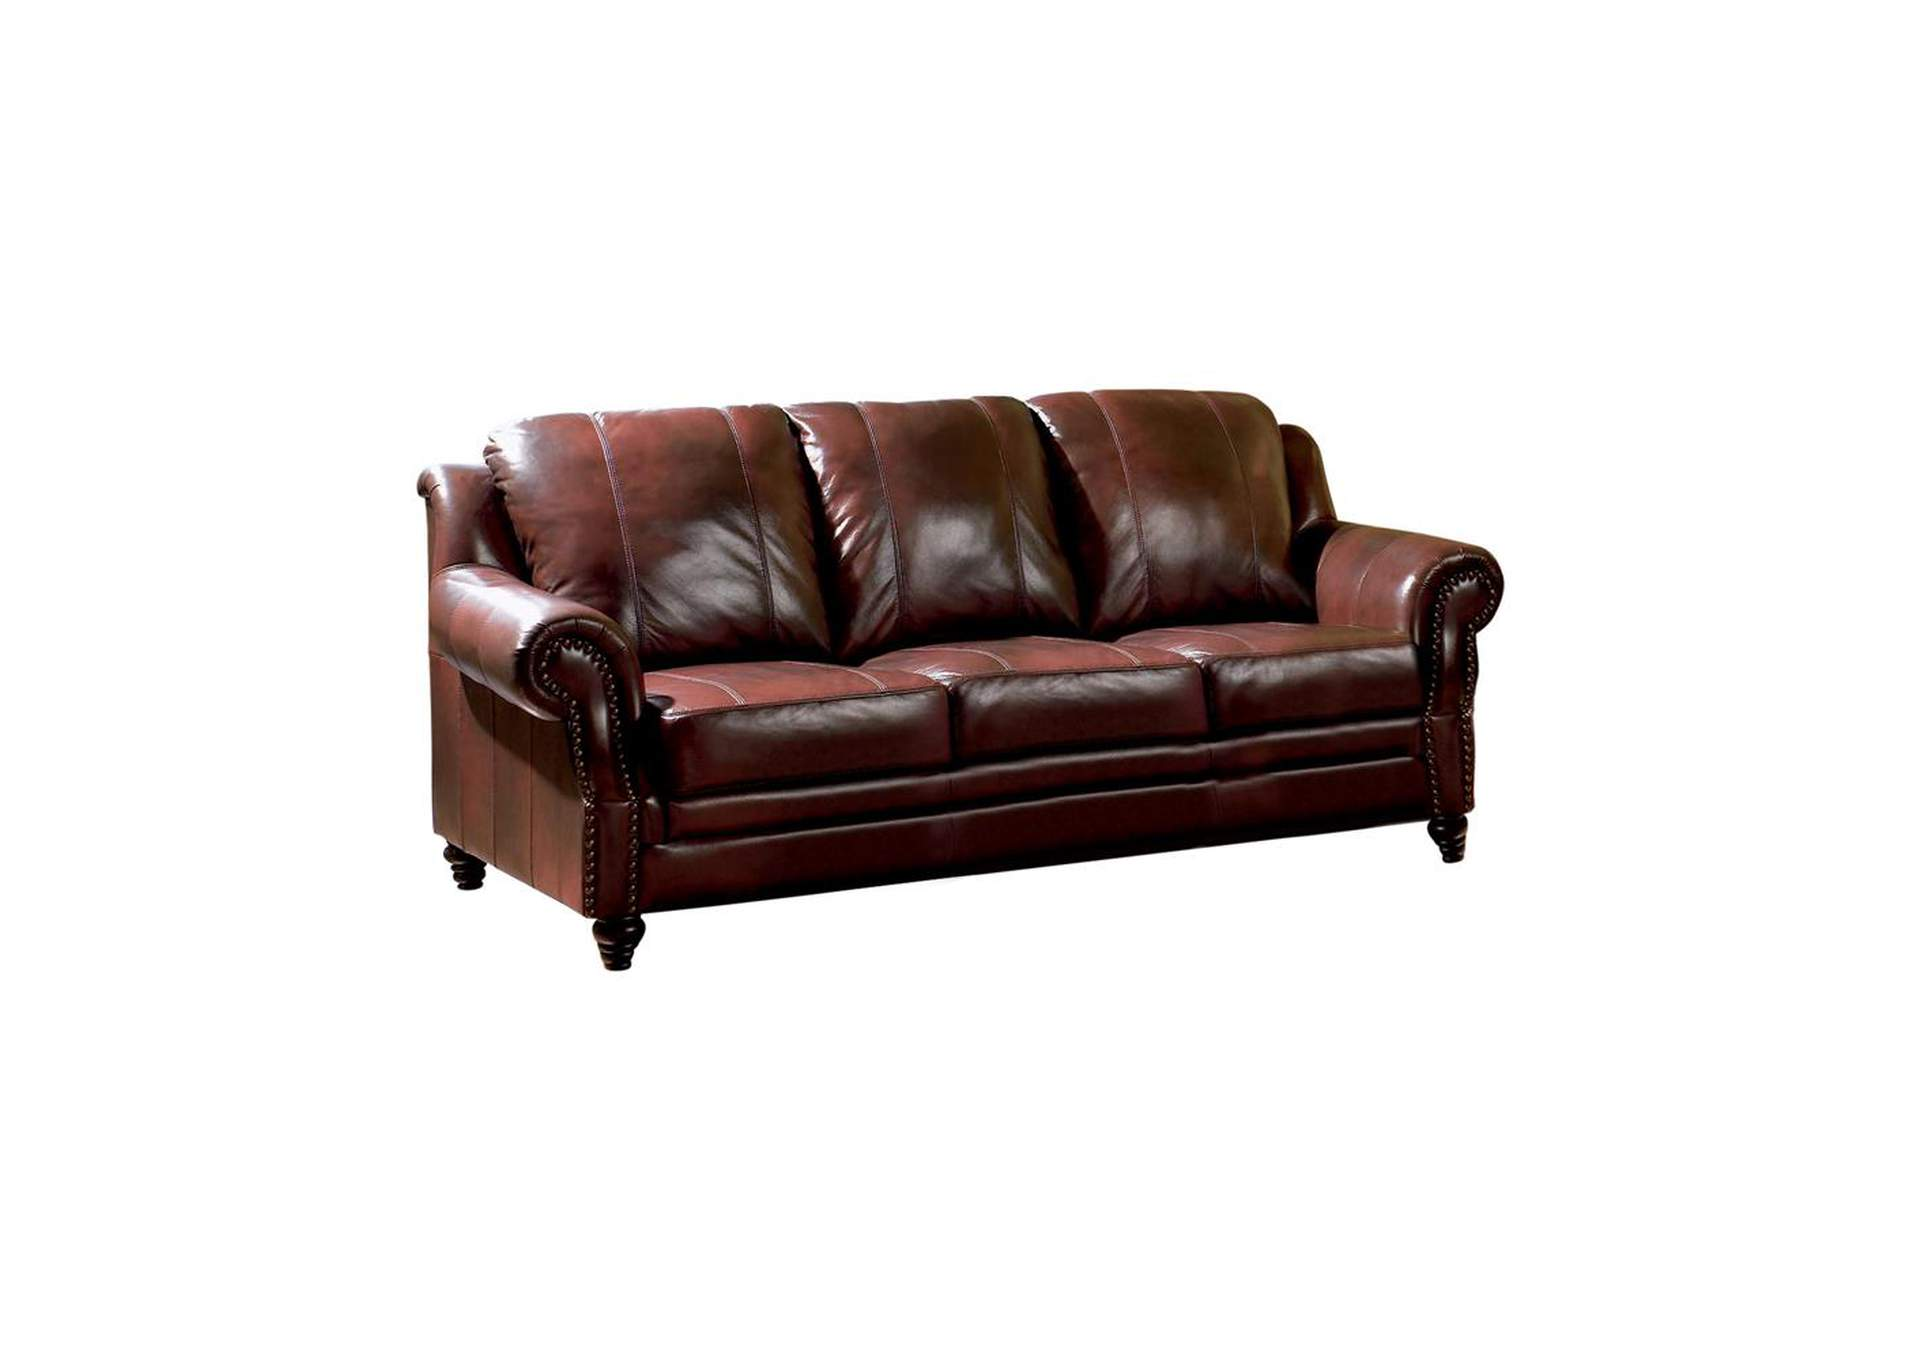 Diesel Princeton Traditional Burgundy Sofa,Coaster Furniture